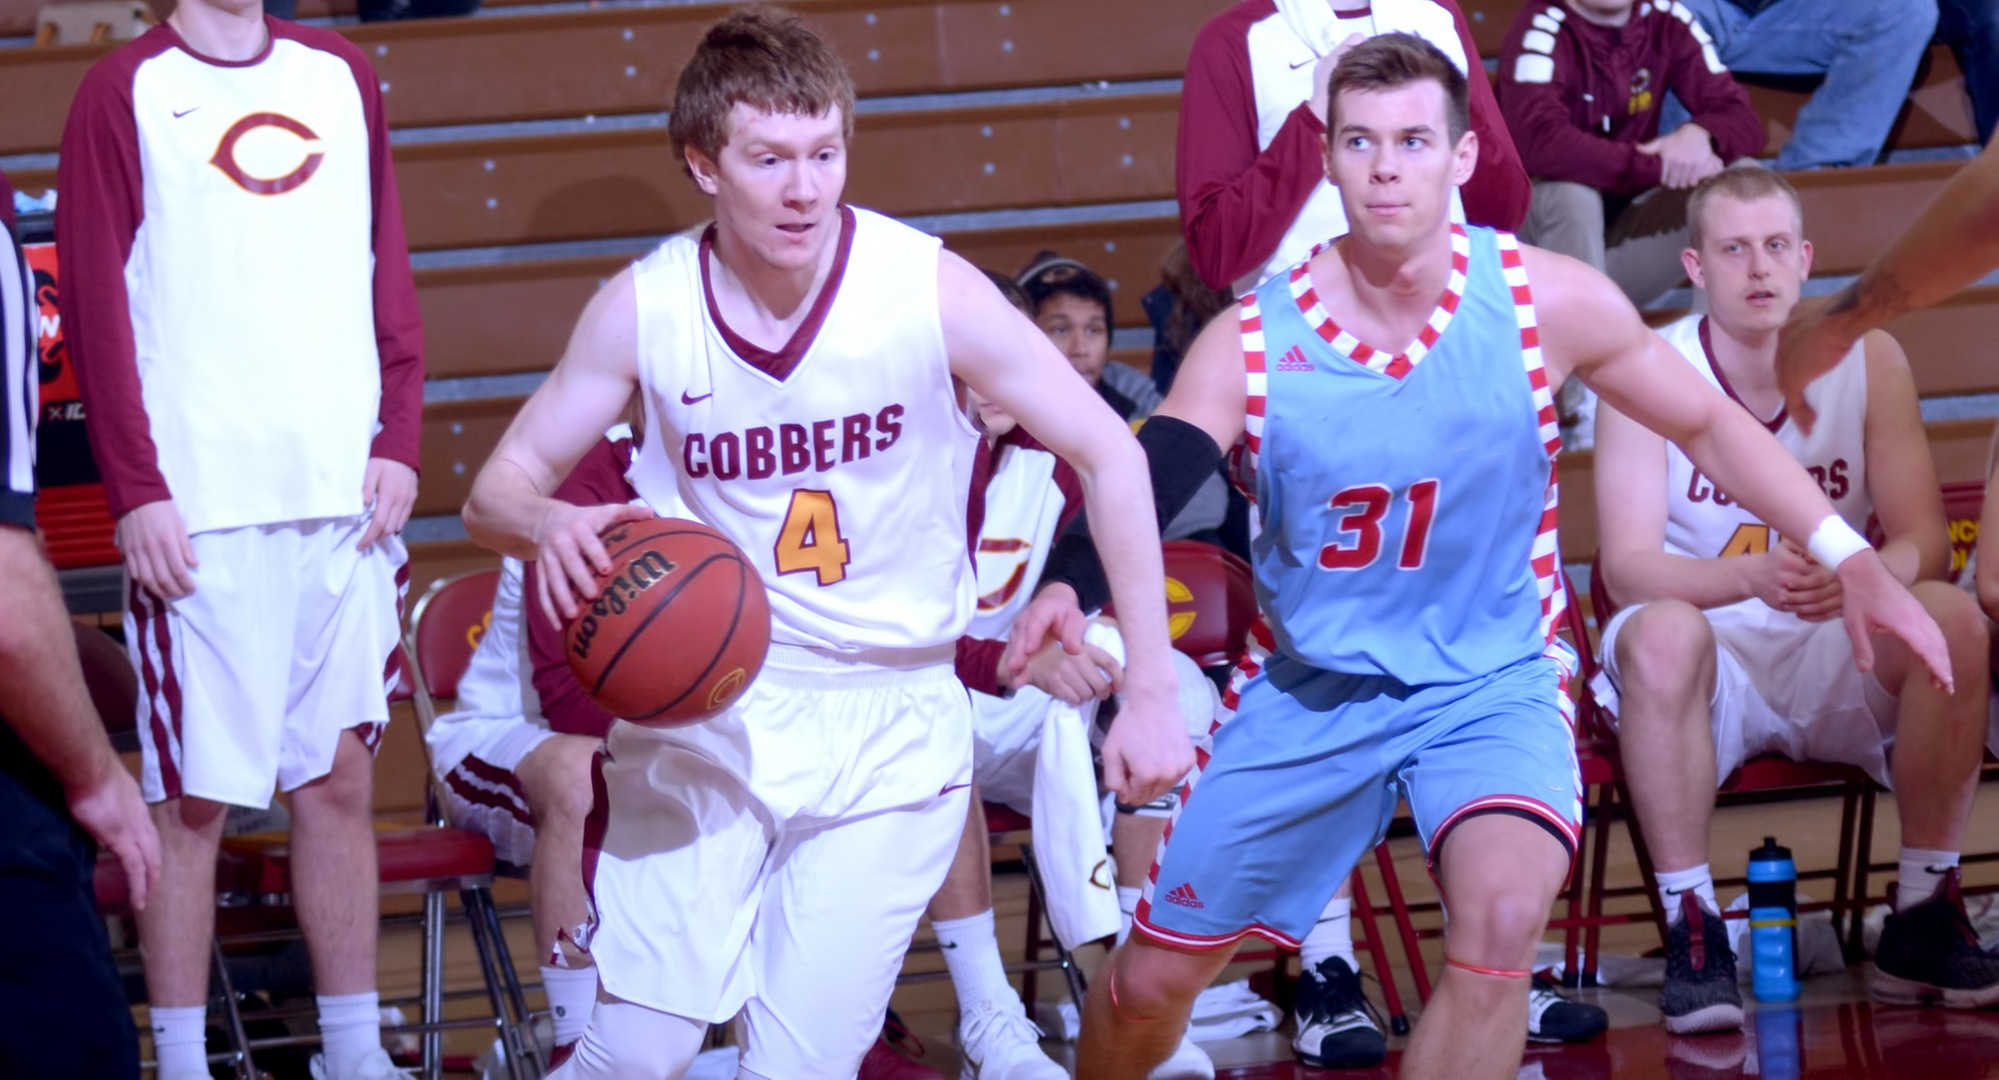 Collin Larson had a team-high 18 points in the Cobbers' game at St. Olaf. Larson has now scored at least 10 points in four straight games.